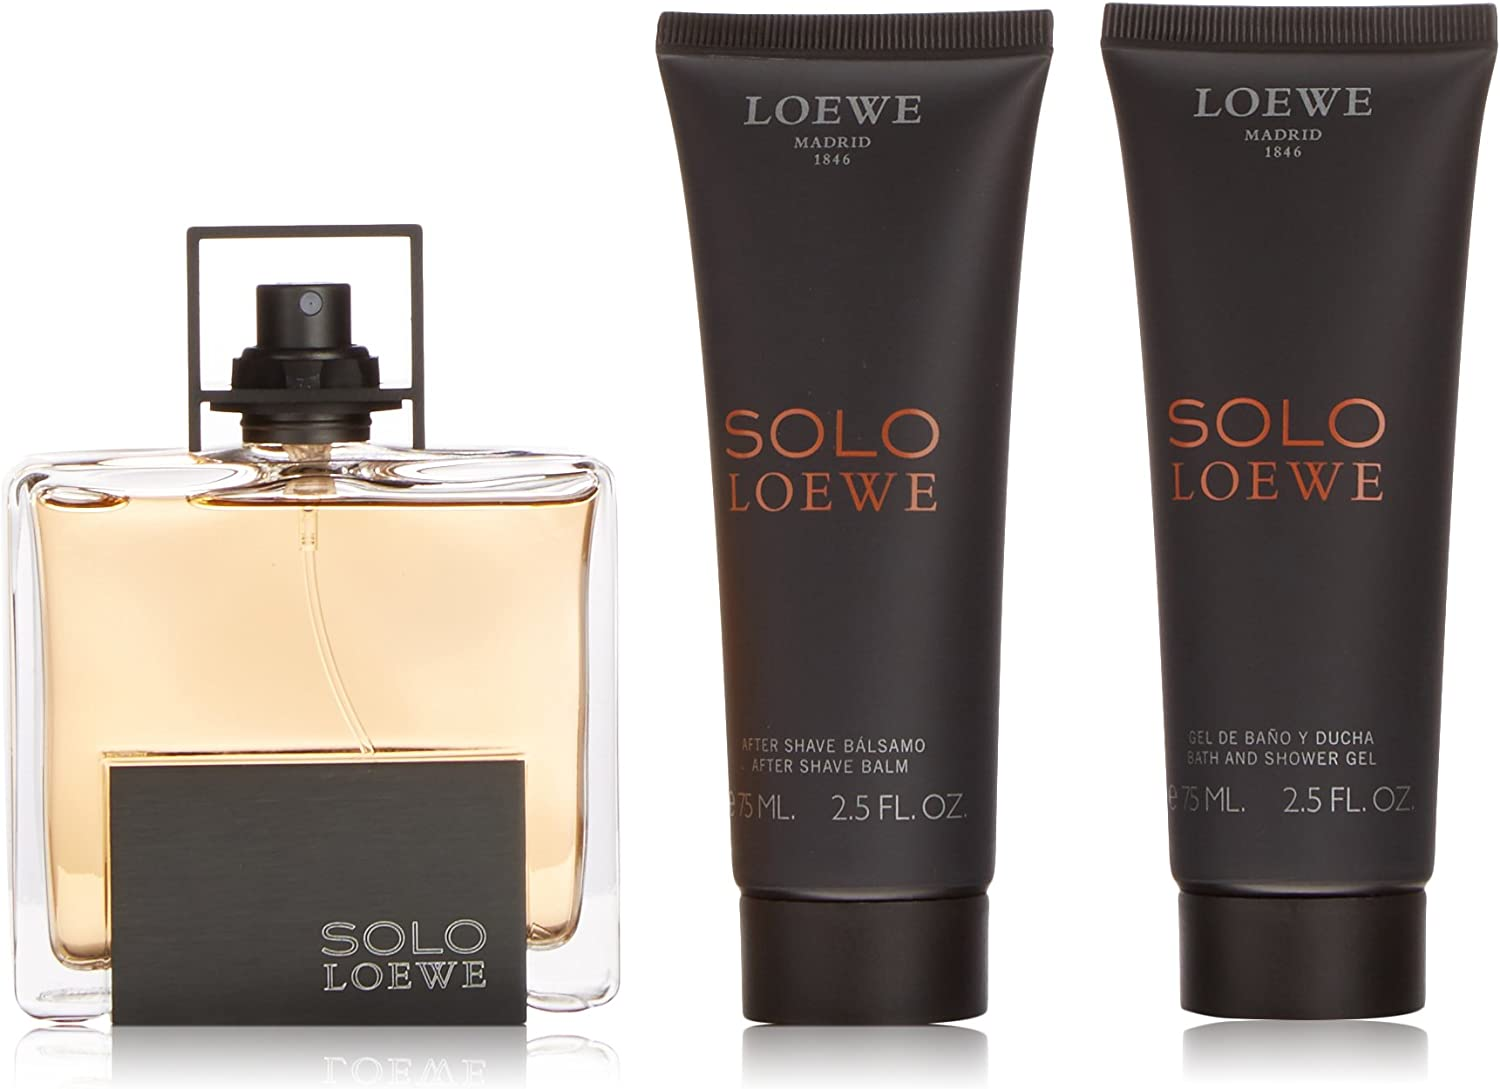 Loewe Solo Loewe Eau De Toilette 75Ml Vapo. + After Shave Balsamo 75Ml + Gel 75Ml: Amazon.es: Belleza